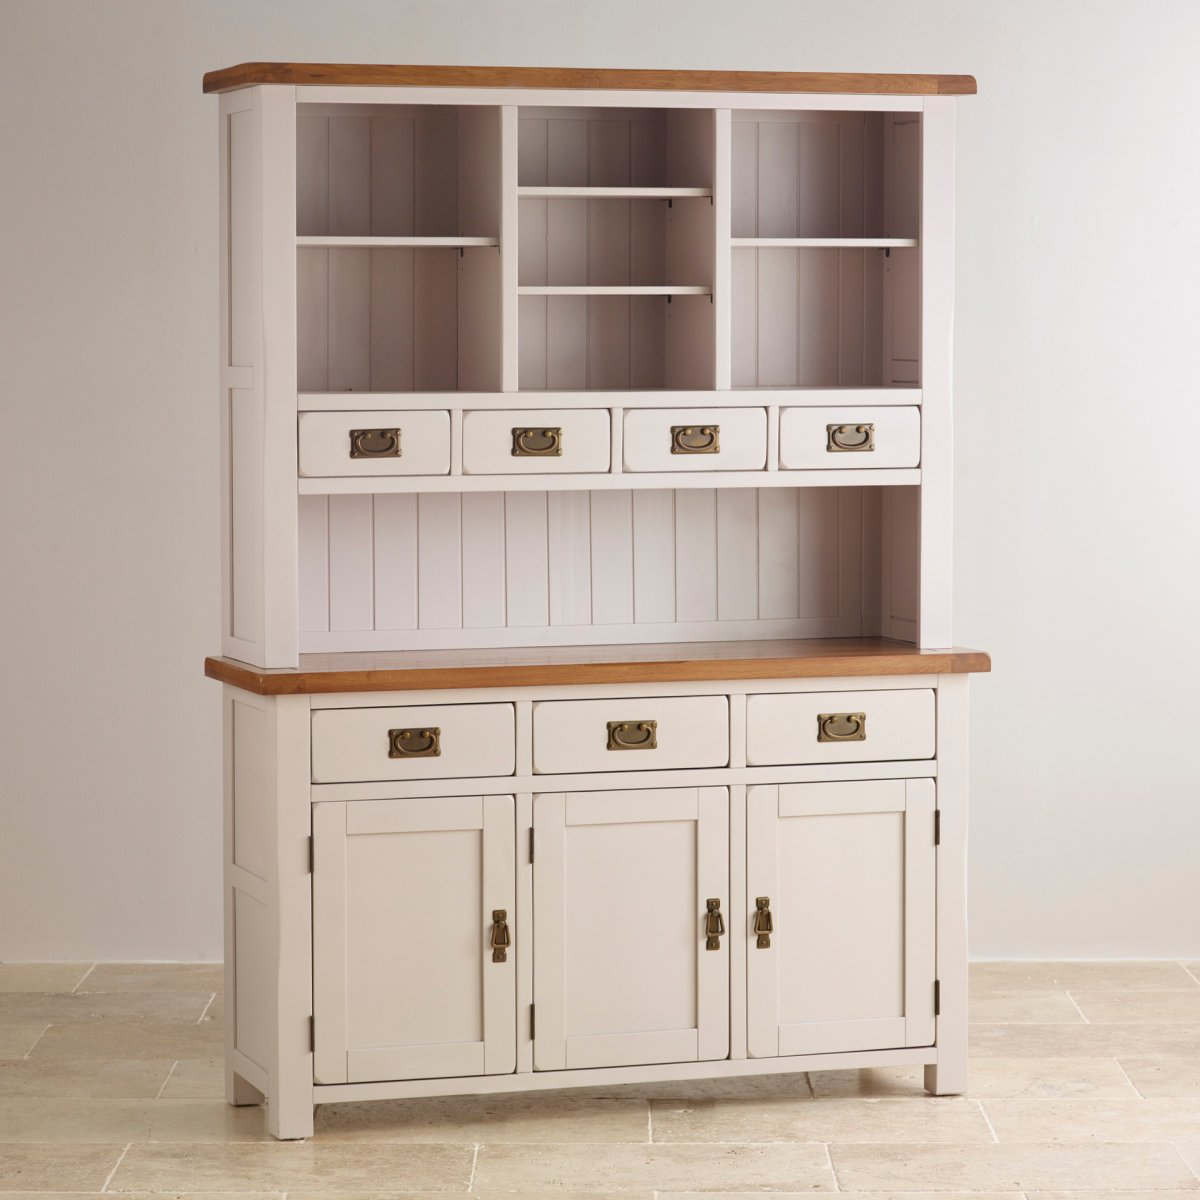 Rustic painted furniture - Custom Delivery Kemble Rustic Solid Oak And Painted Large Dresser